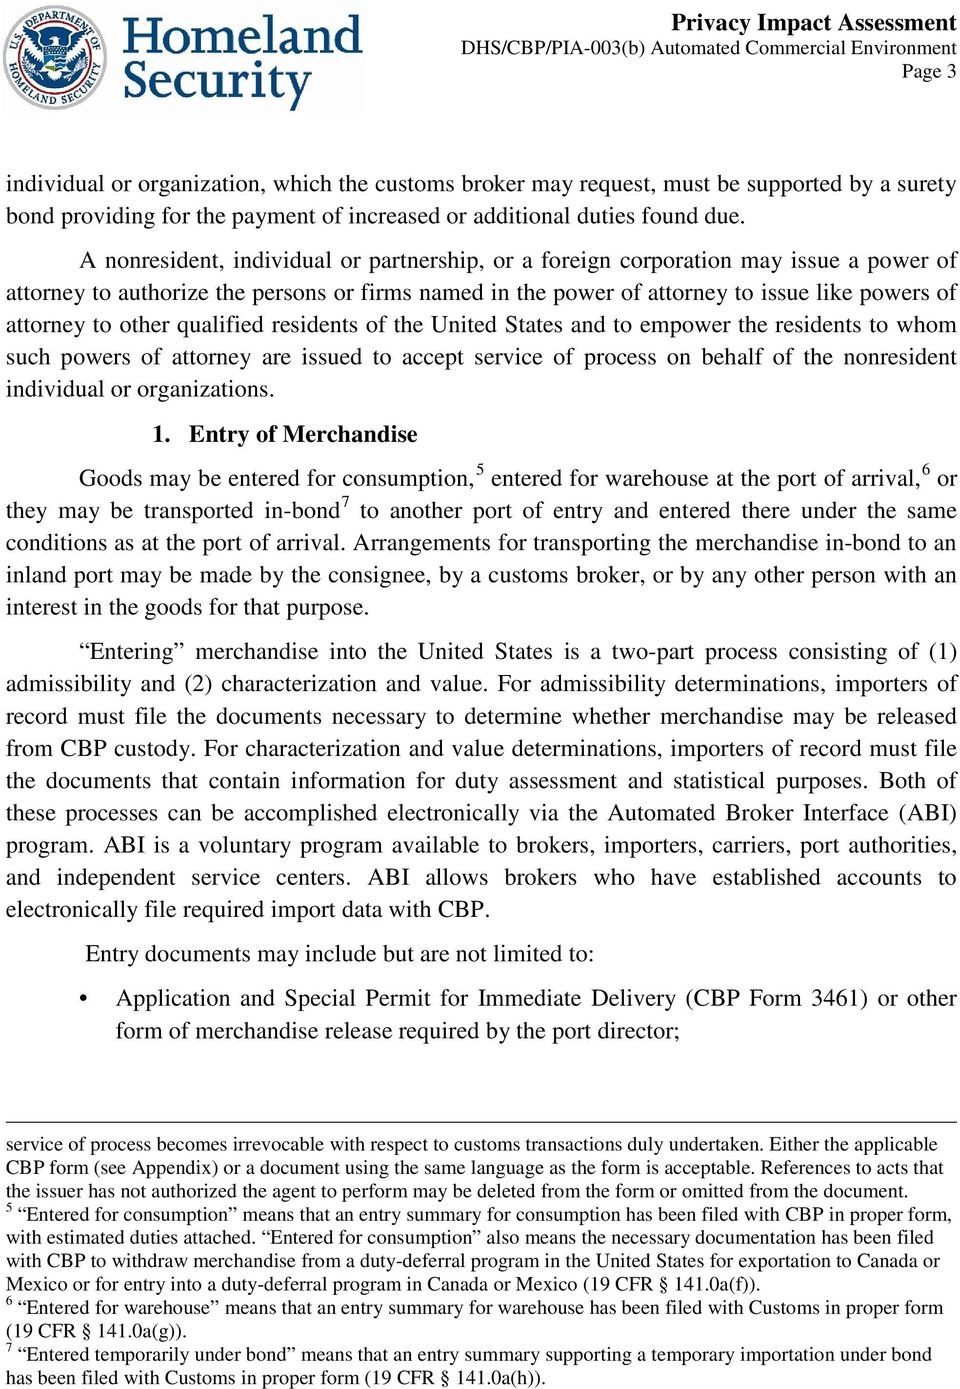 Automated Commercial Environment (ACE) - PDF